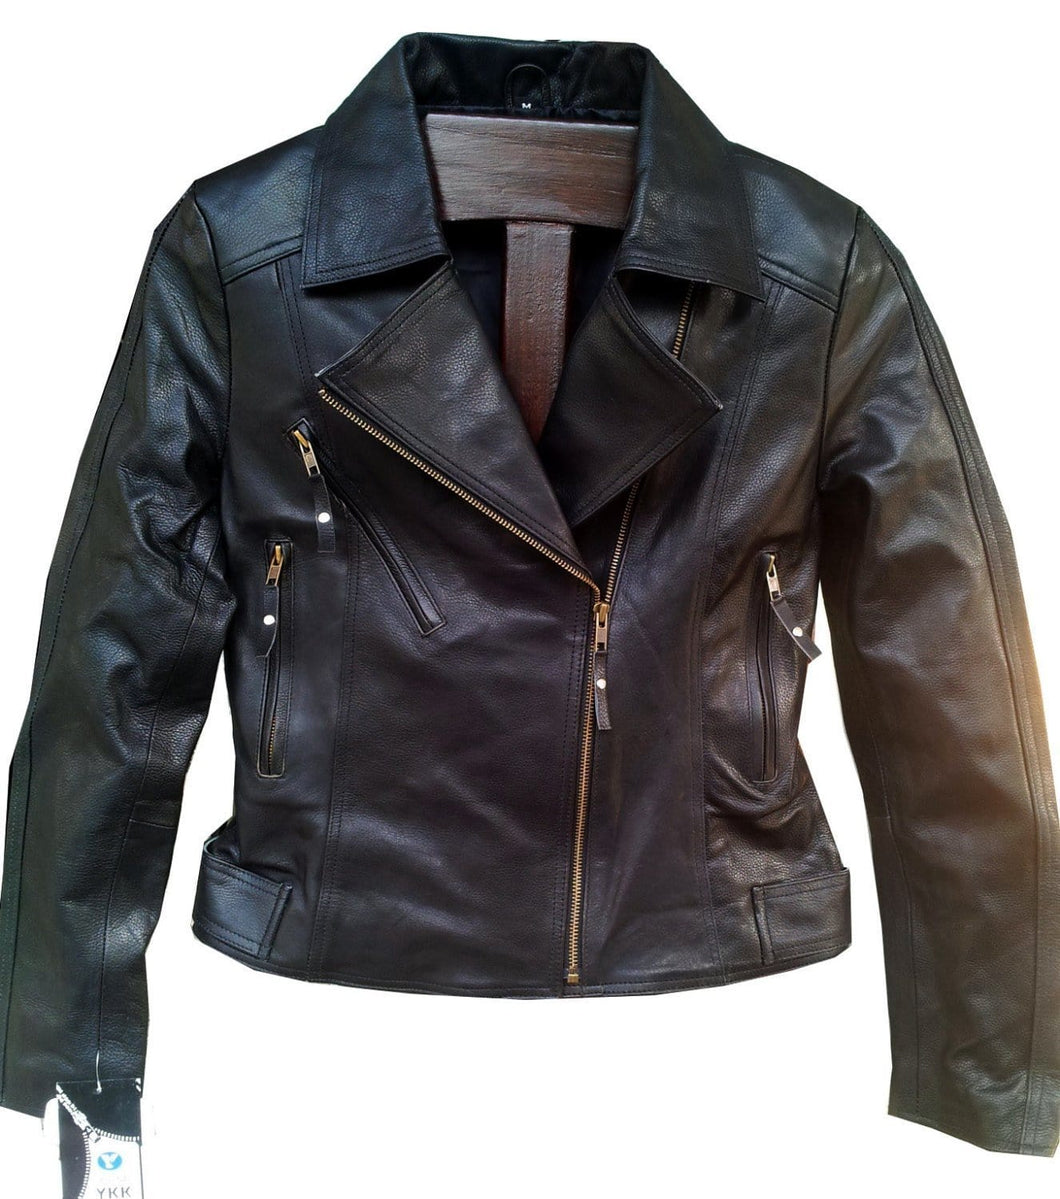 leather404 Clothing, Shoes & Accessories:women's Clothing:Coats & Jackets s Handmade Women Black Simple Brando Style Leather Jacket, Women leather jackets